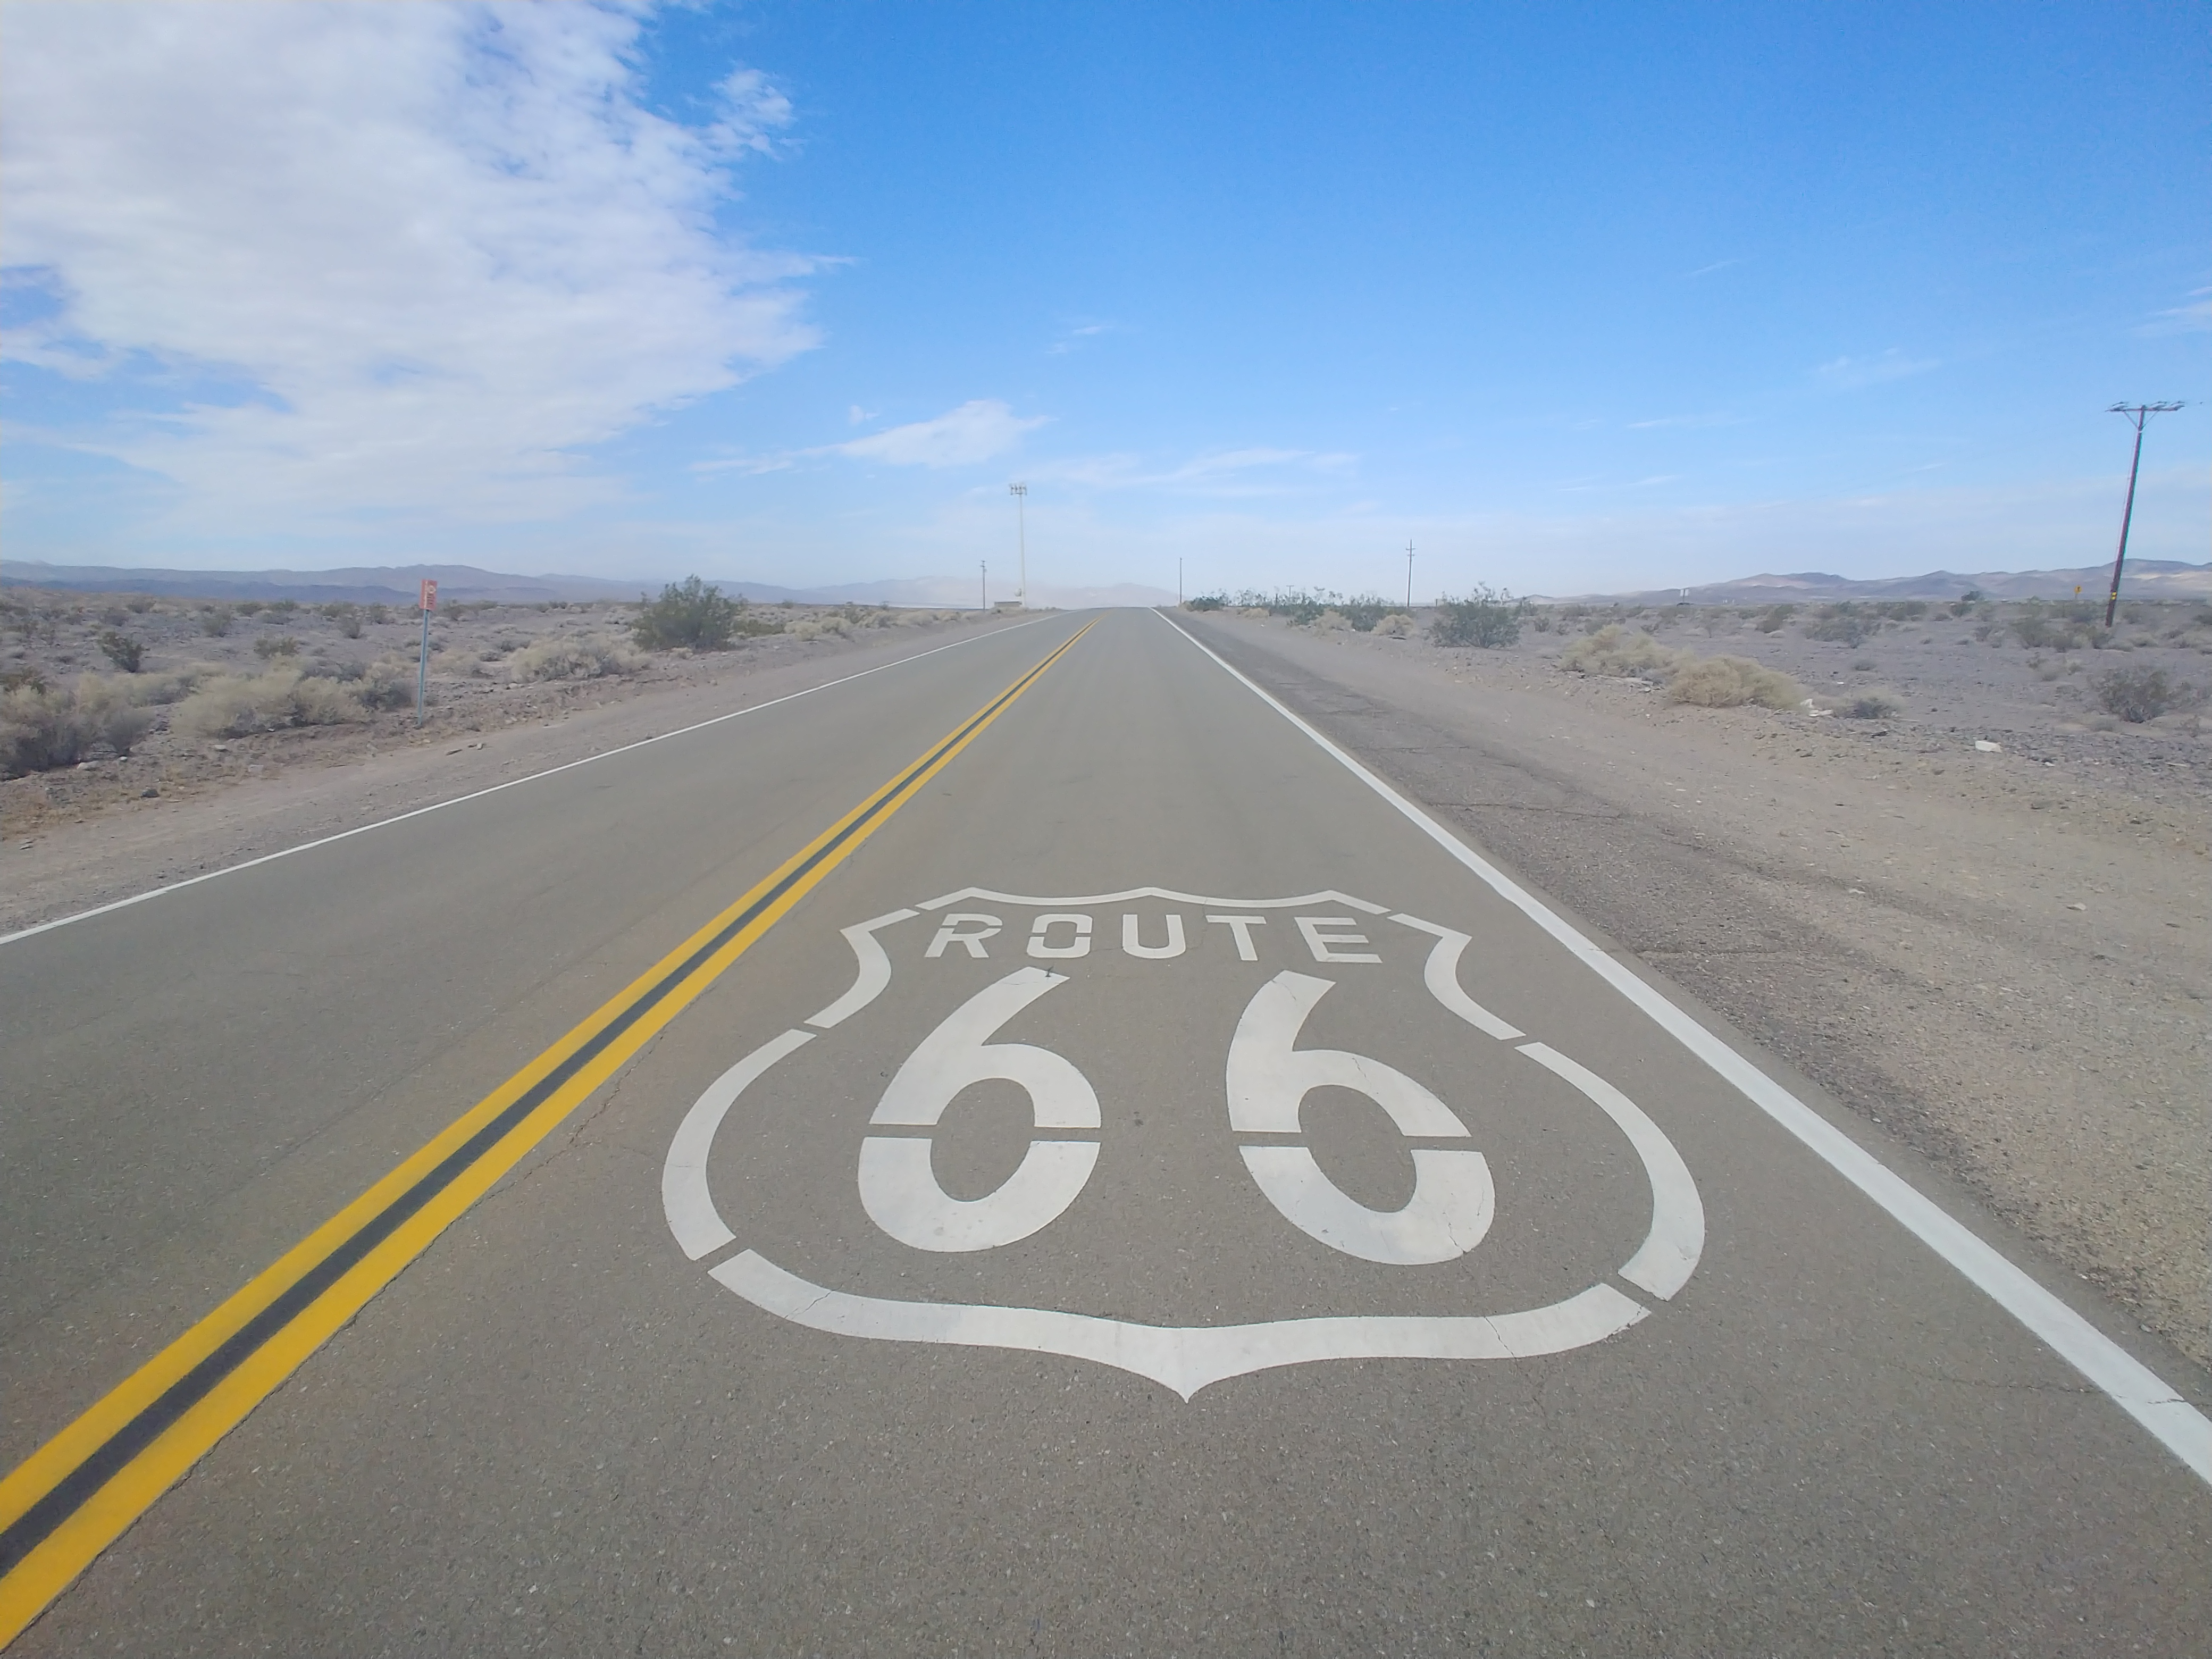 """Fridge magnet with view of /""""Route 66/"""" road"""